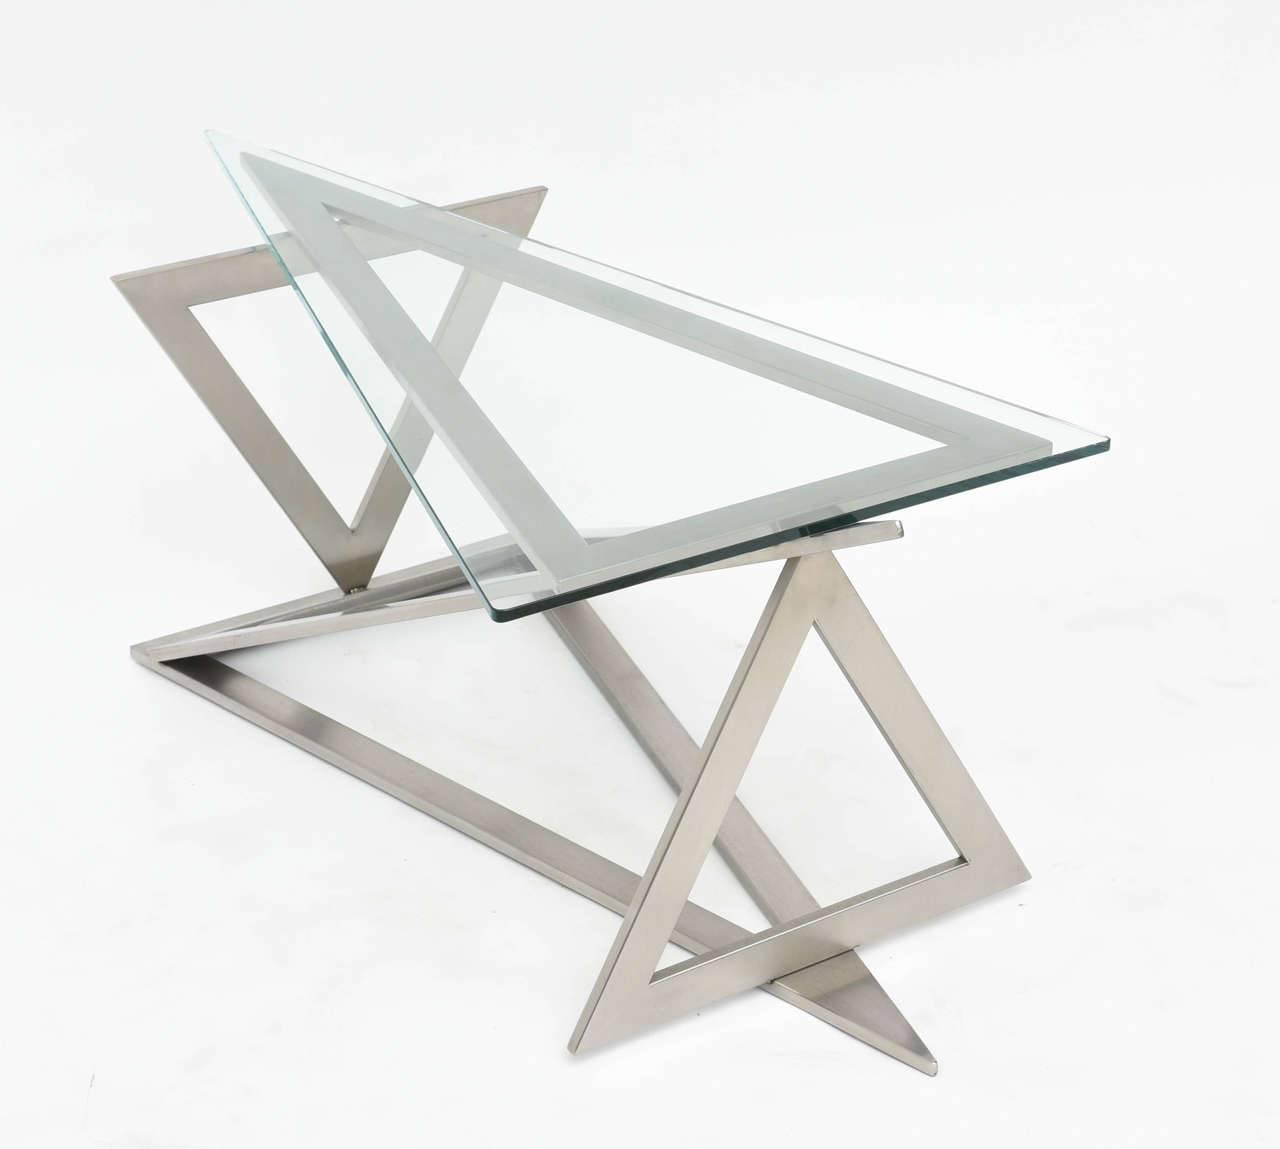 Italian Modern Stainless Steel and Glass Table Attributed to Giovanni Offredi 4